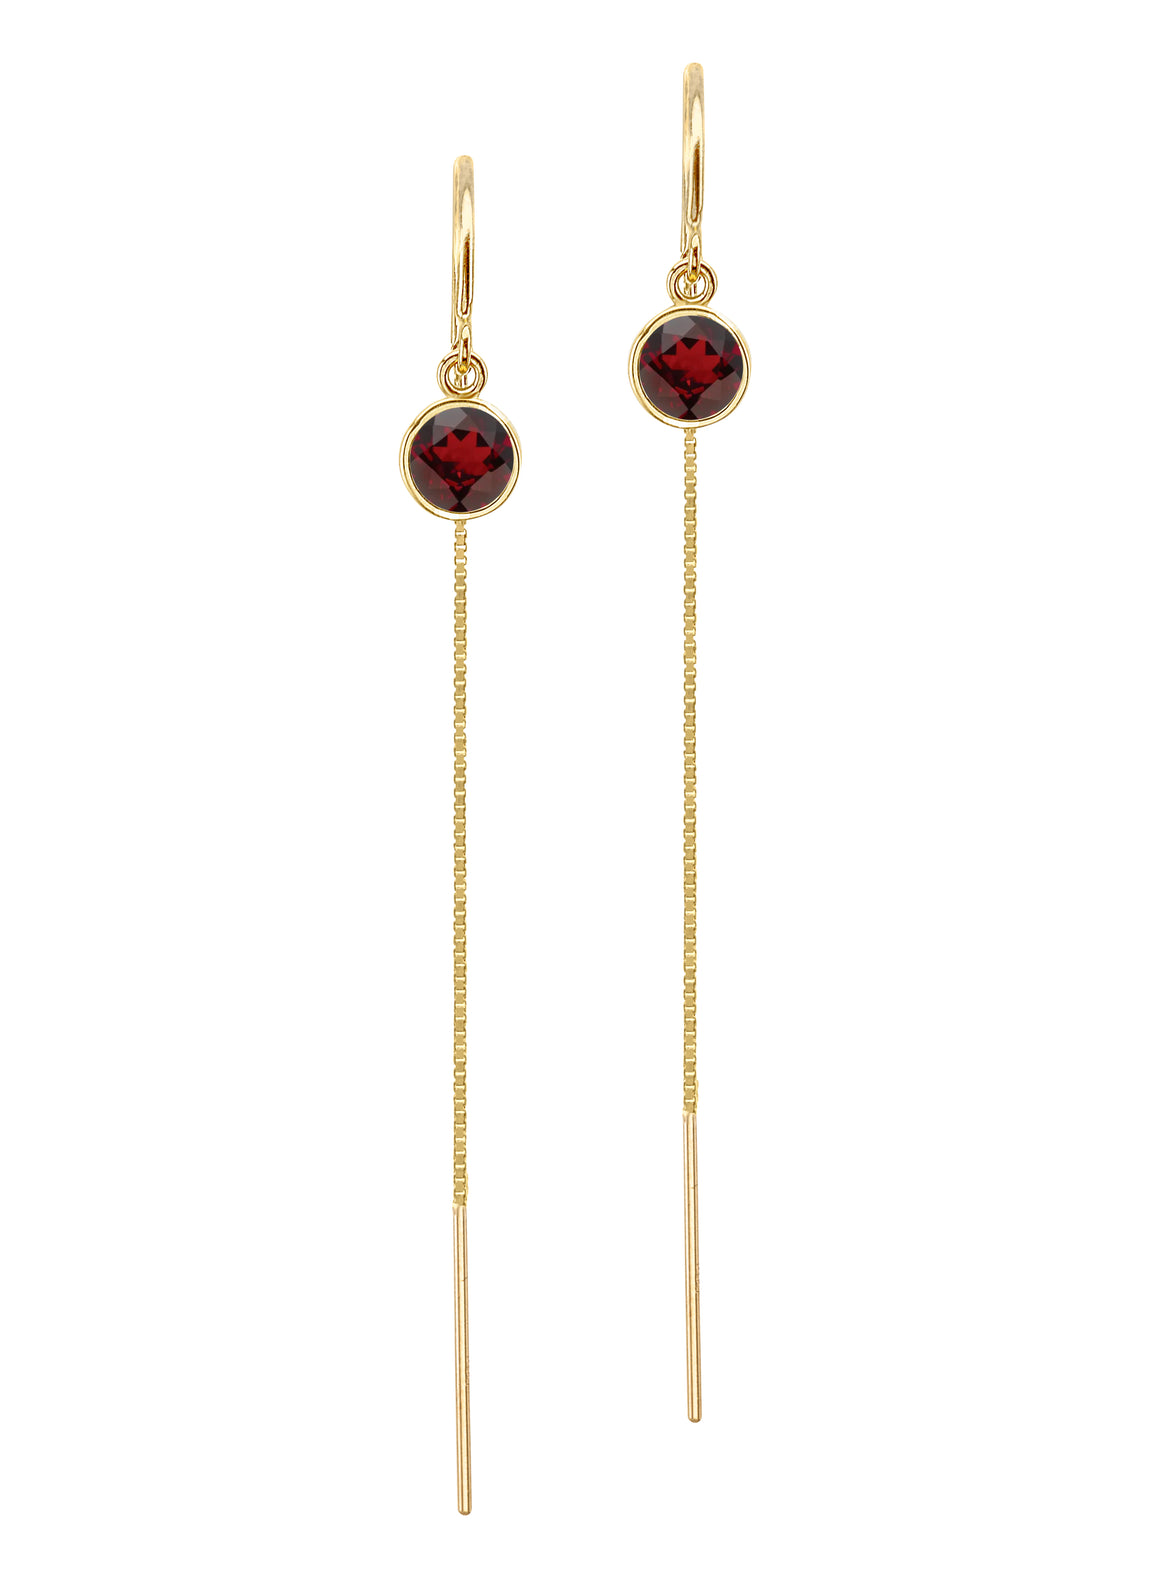 14K Yellow Gold Floating Dark Red Garnet Box Chain Threader Earrings